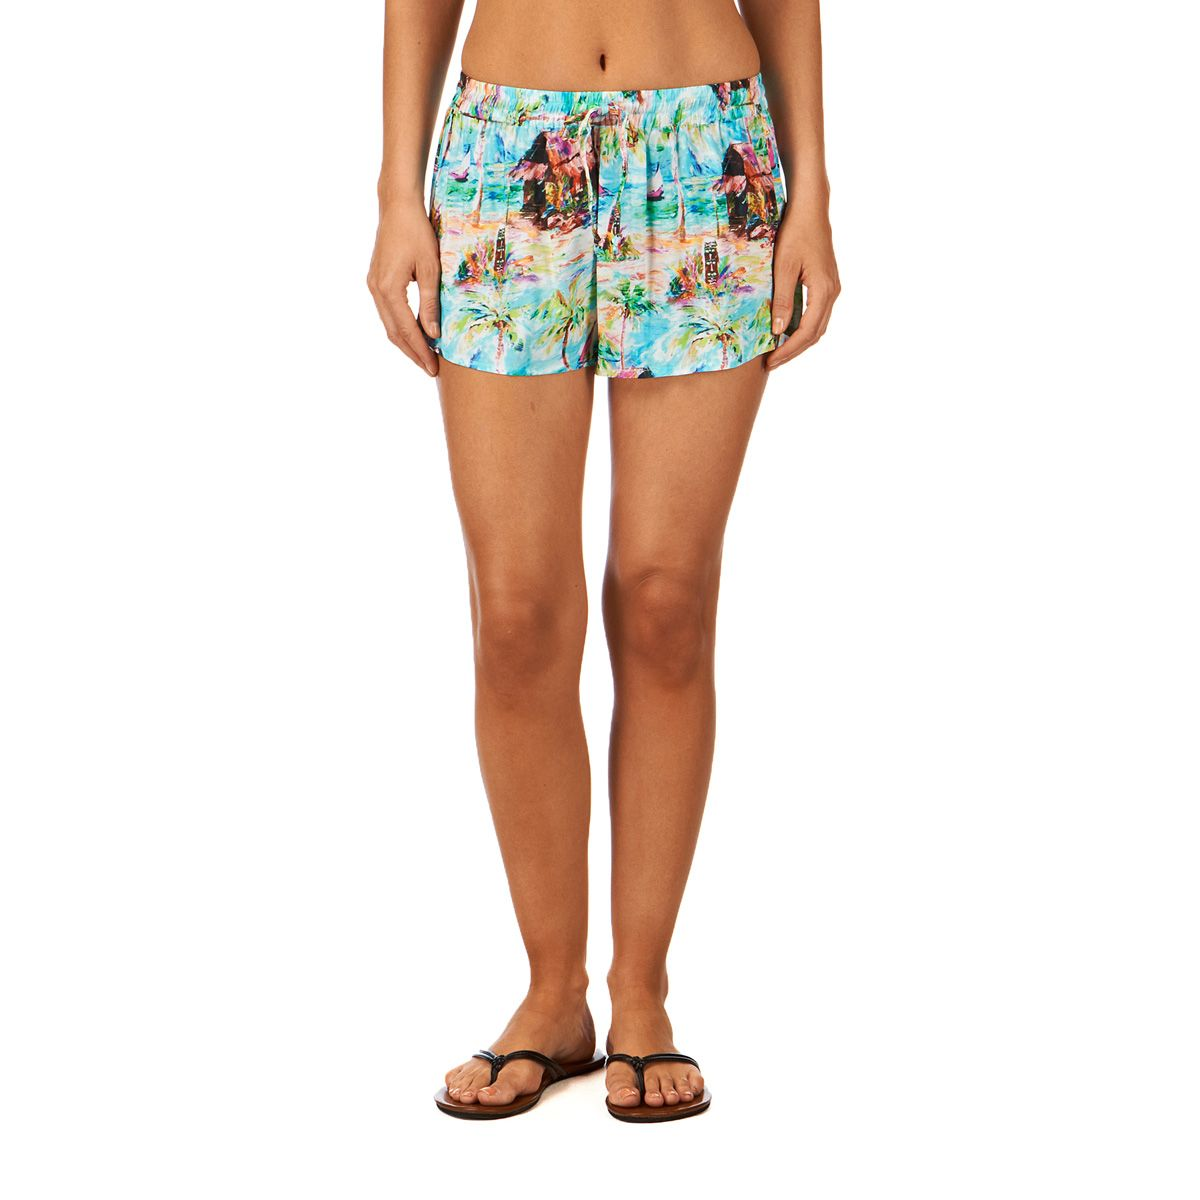 Seafolly Blue Lagoon Shorts - Ice | Free UK Delivery on All Orders